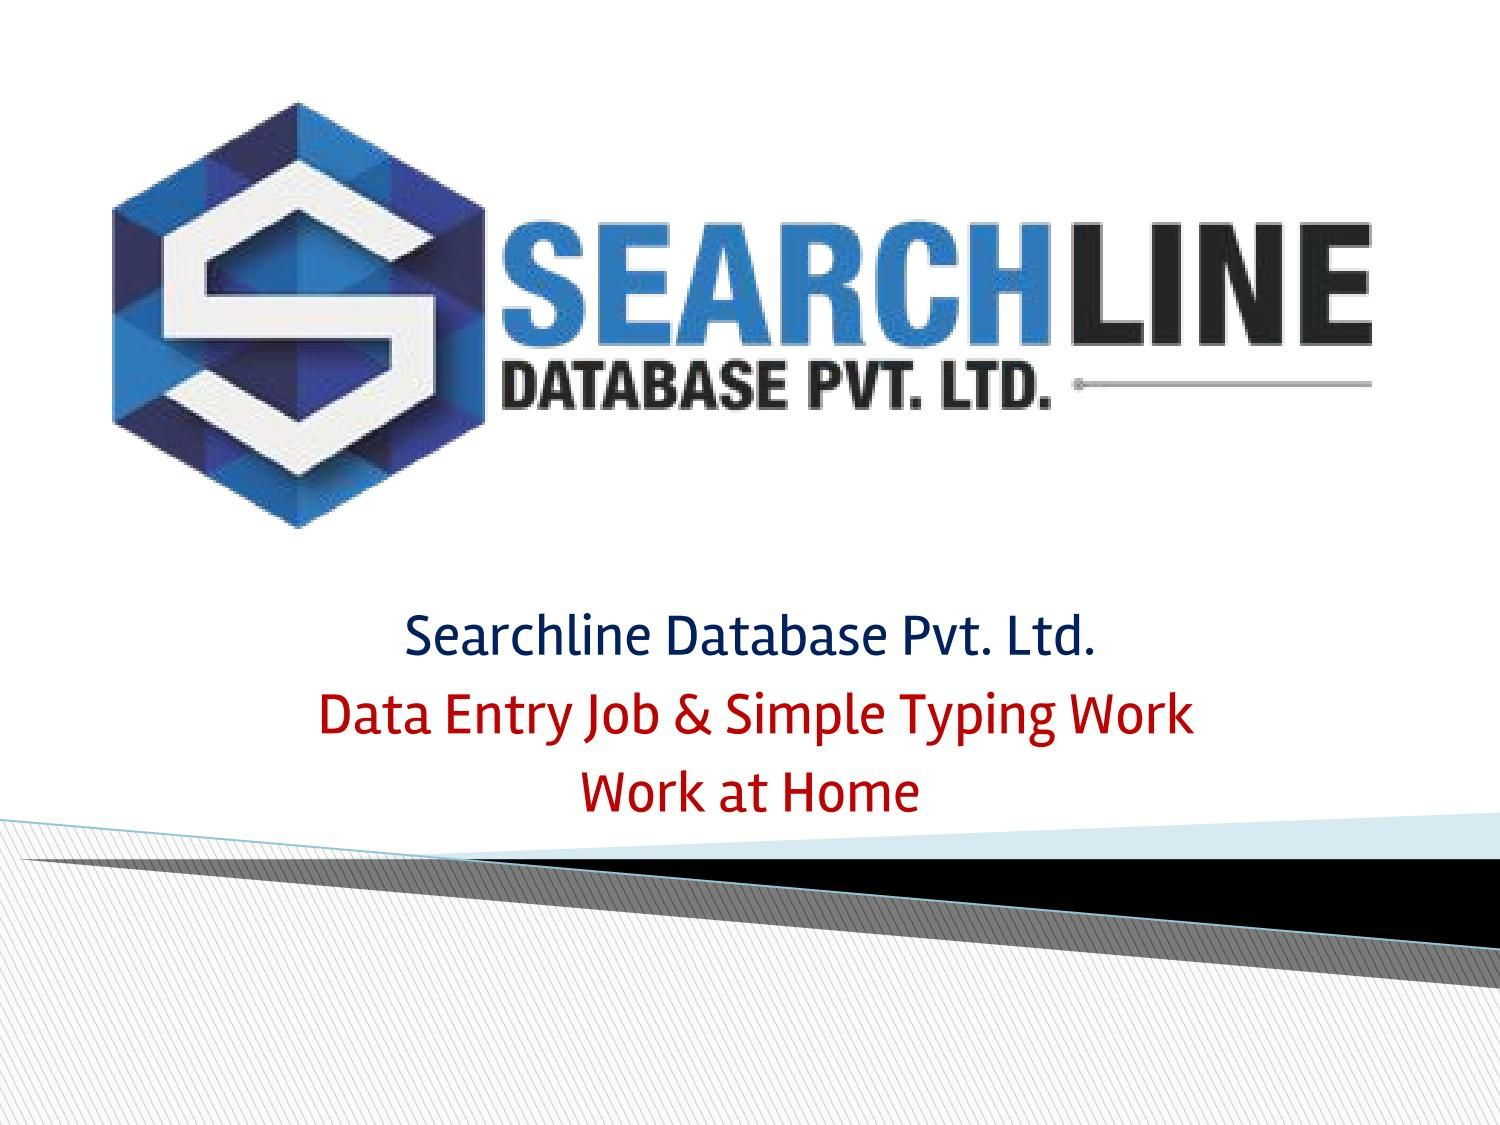 Searchline Database - Data Entry and Simple Typing Job | Data Entry